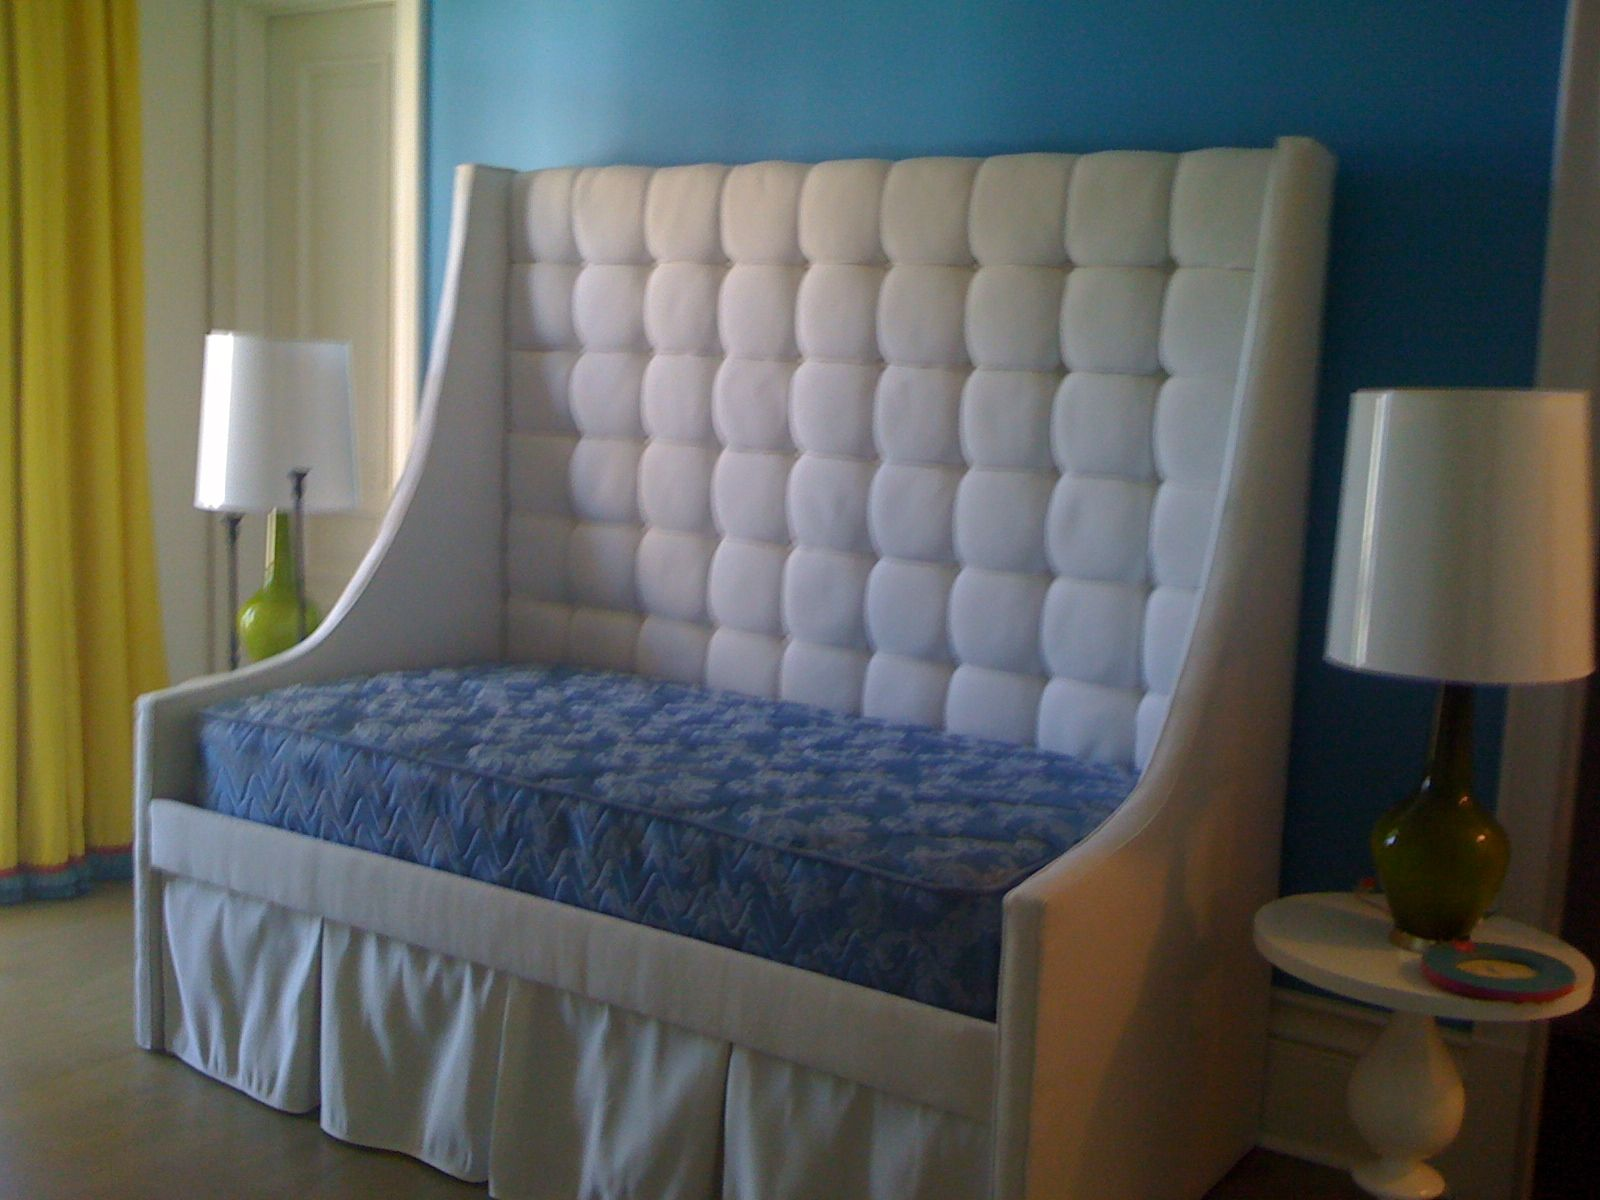 Tall headboards for queen beds - Idyllic White Tufted Headboard Tall Designs For Amazing Sofa Beds With Blue Velvet Seat As Well